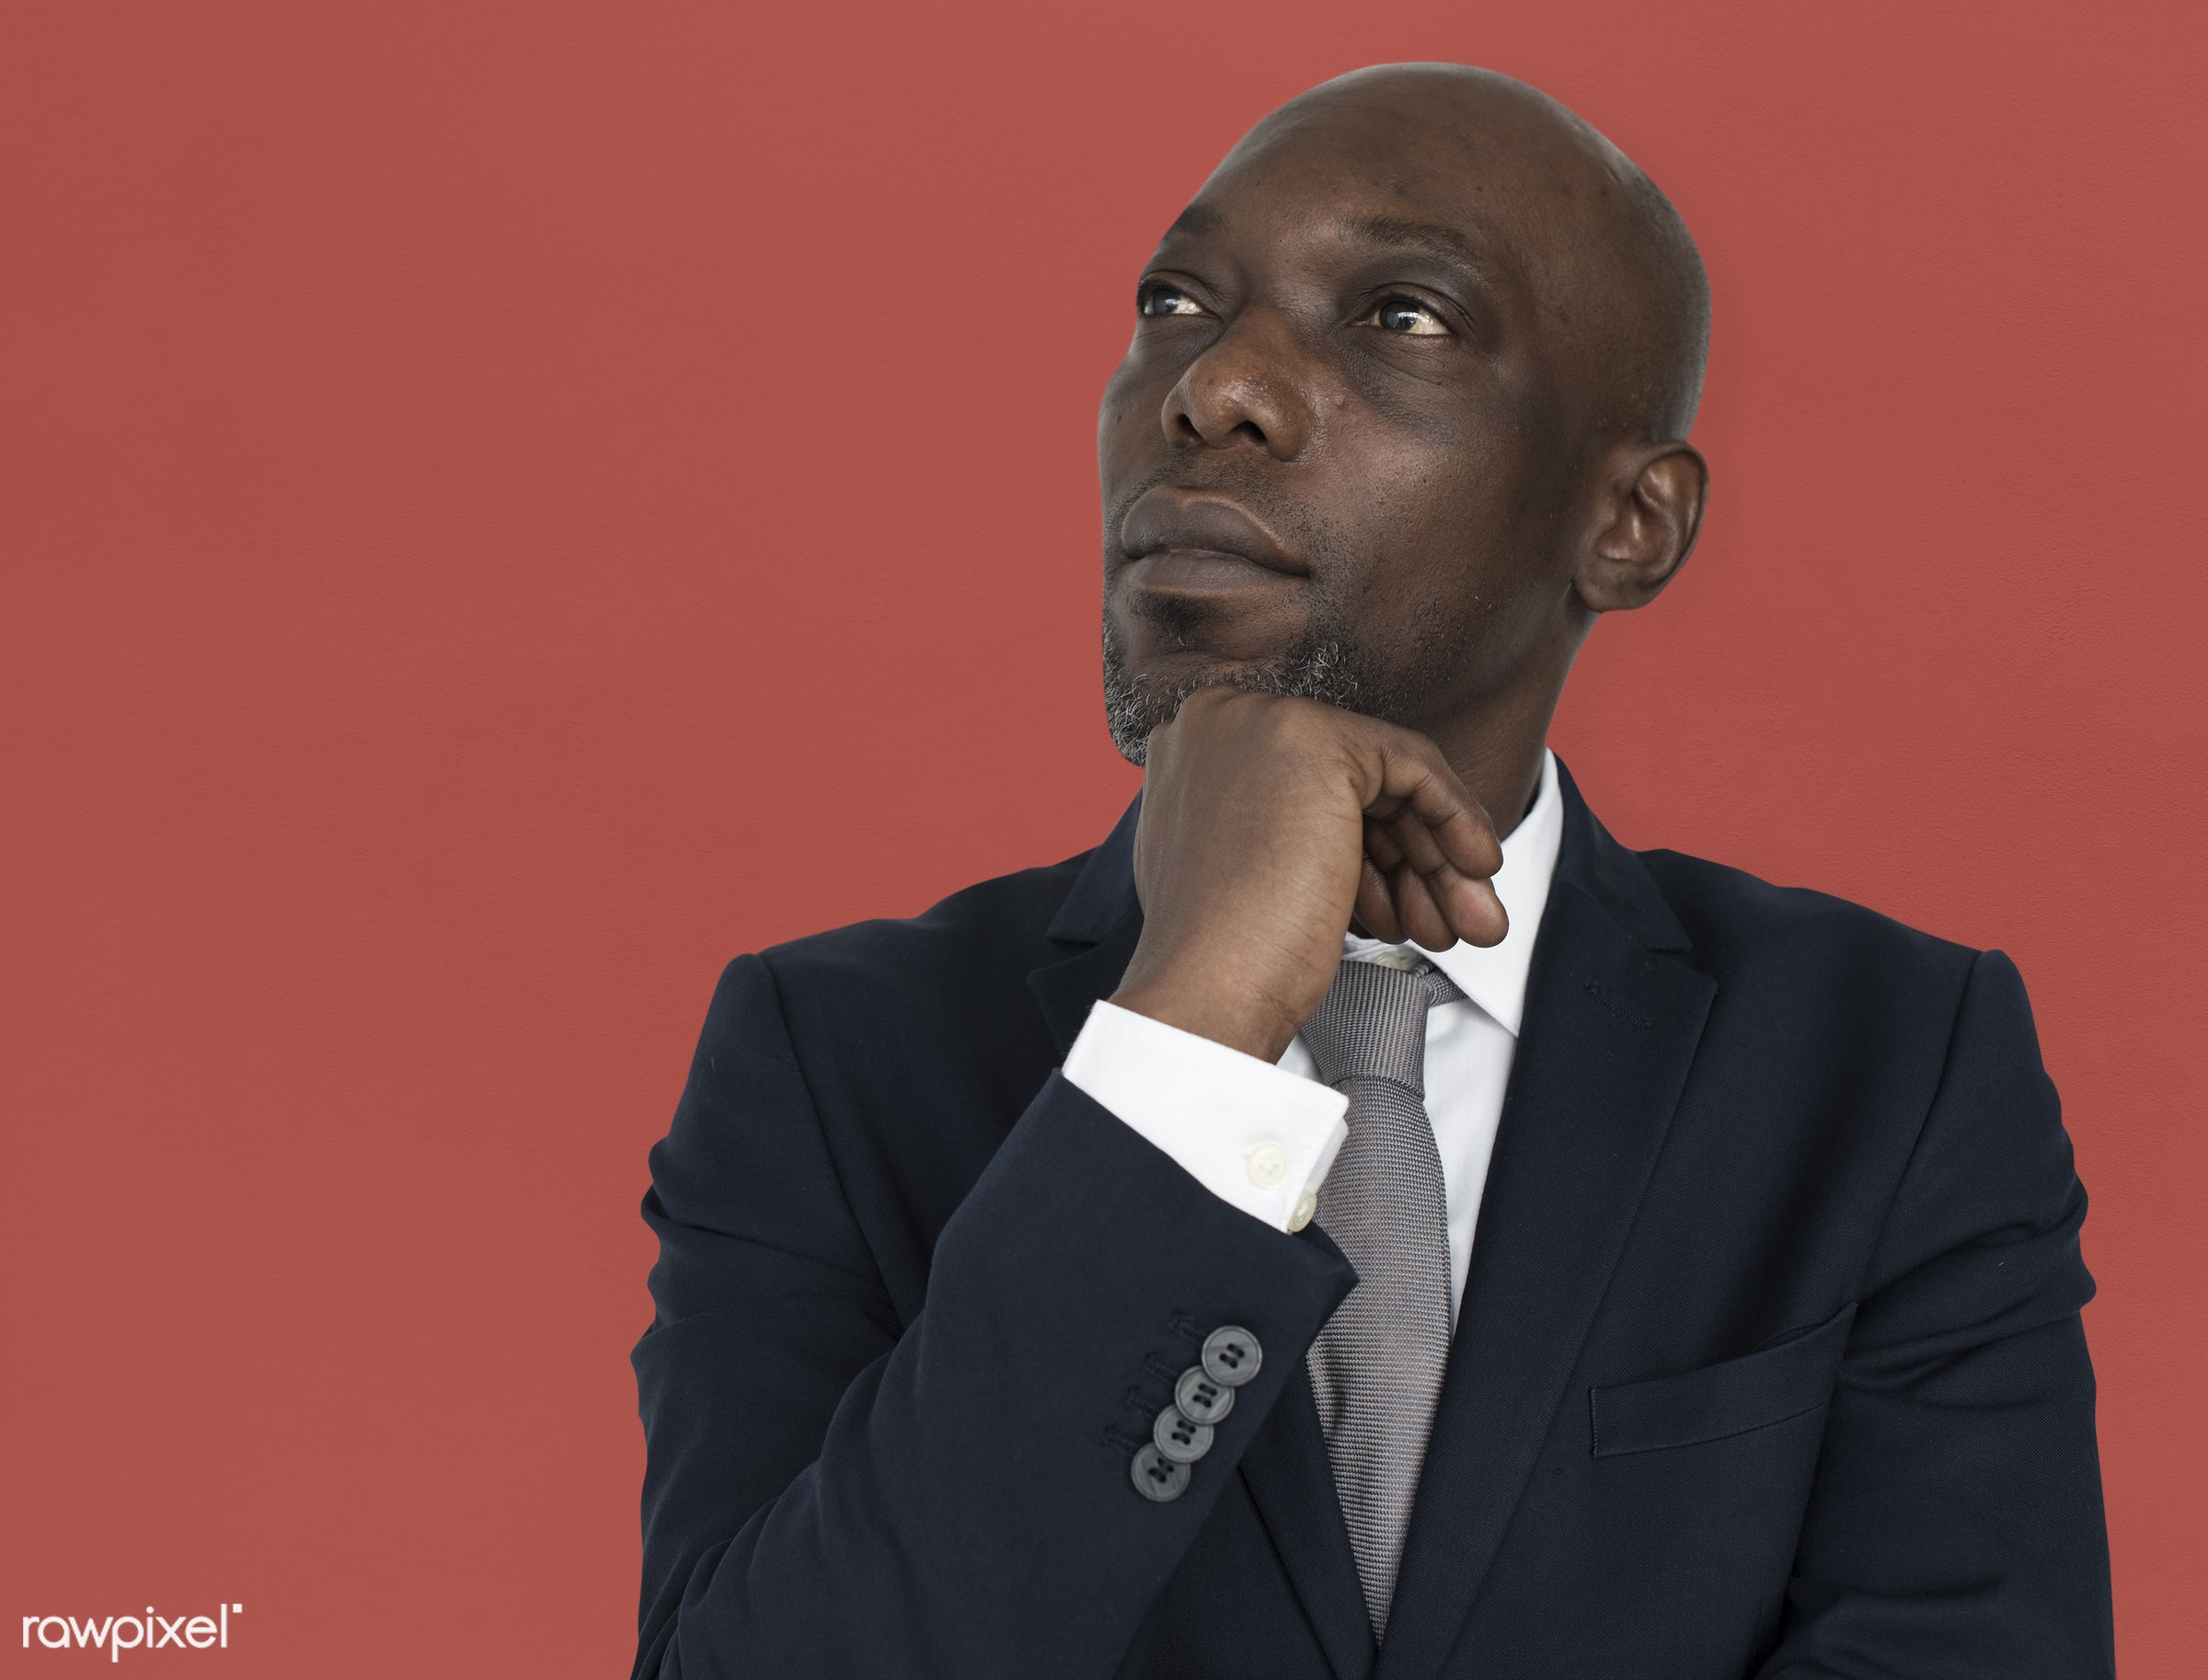 black, african, suit, tie, professional, thinking, think, african american, male, man, business, bussinessman